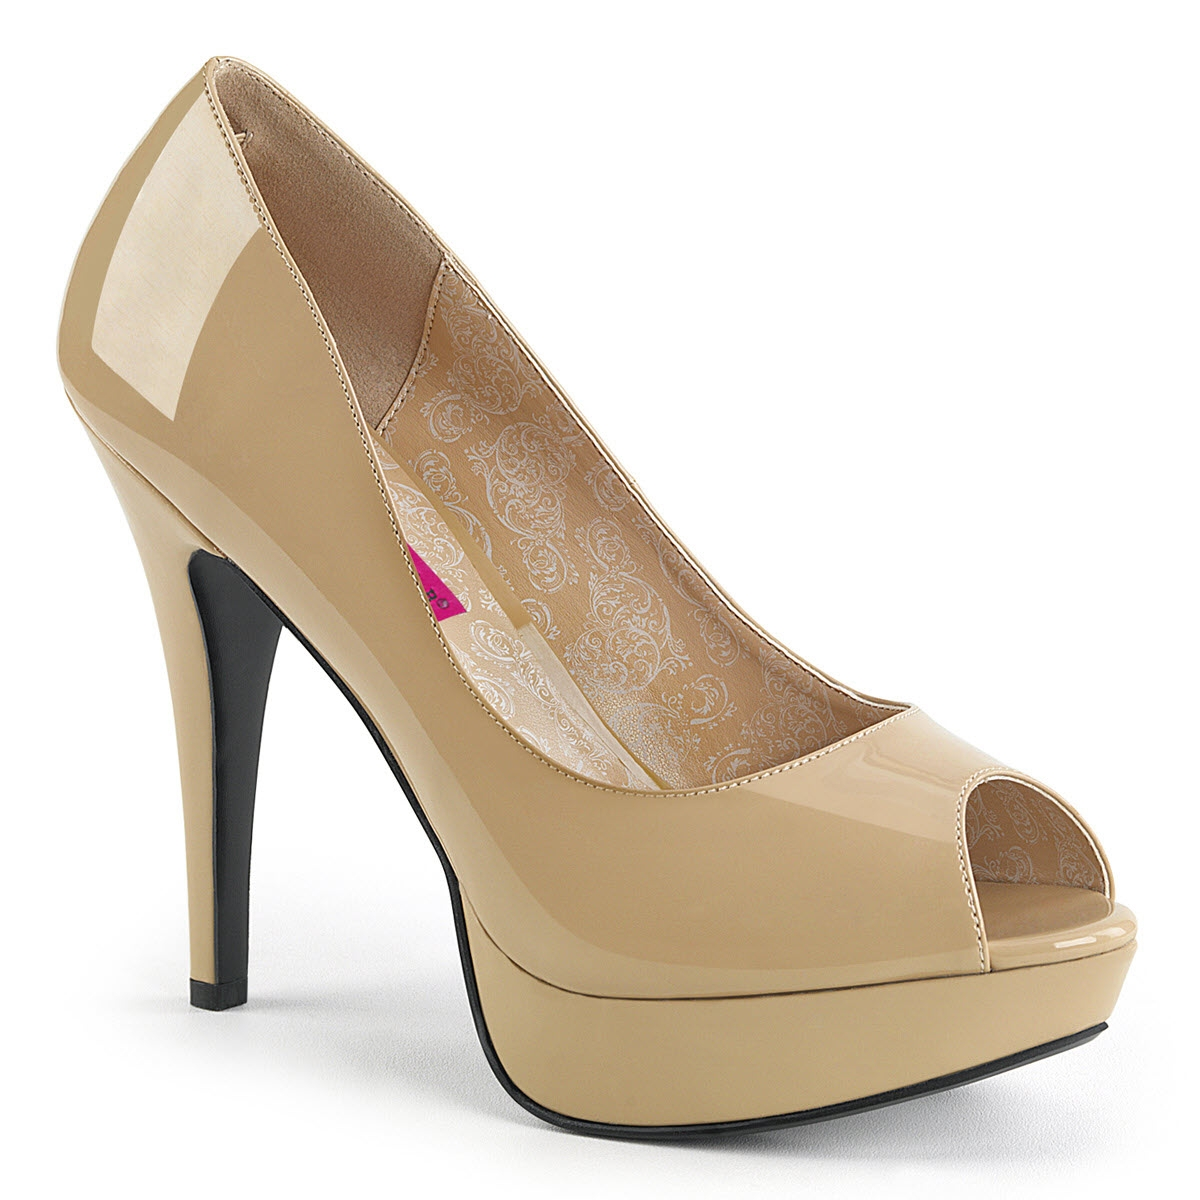 Image of Peep-Toe Pumps, CHLOE-01, Lack, Beige-12